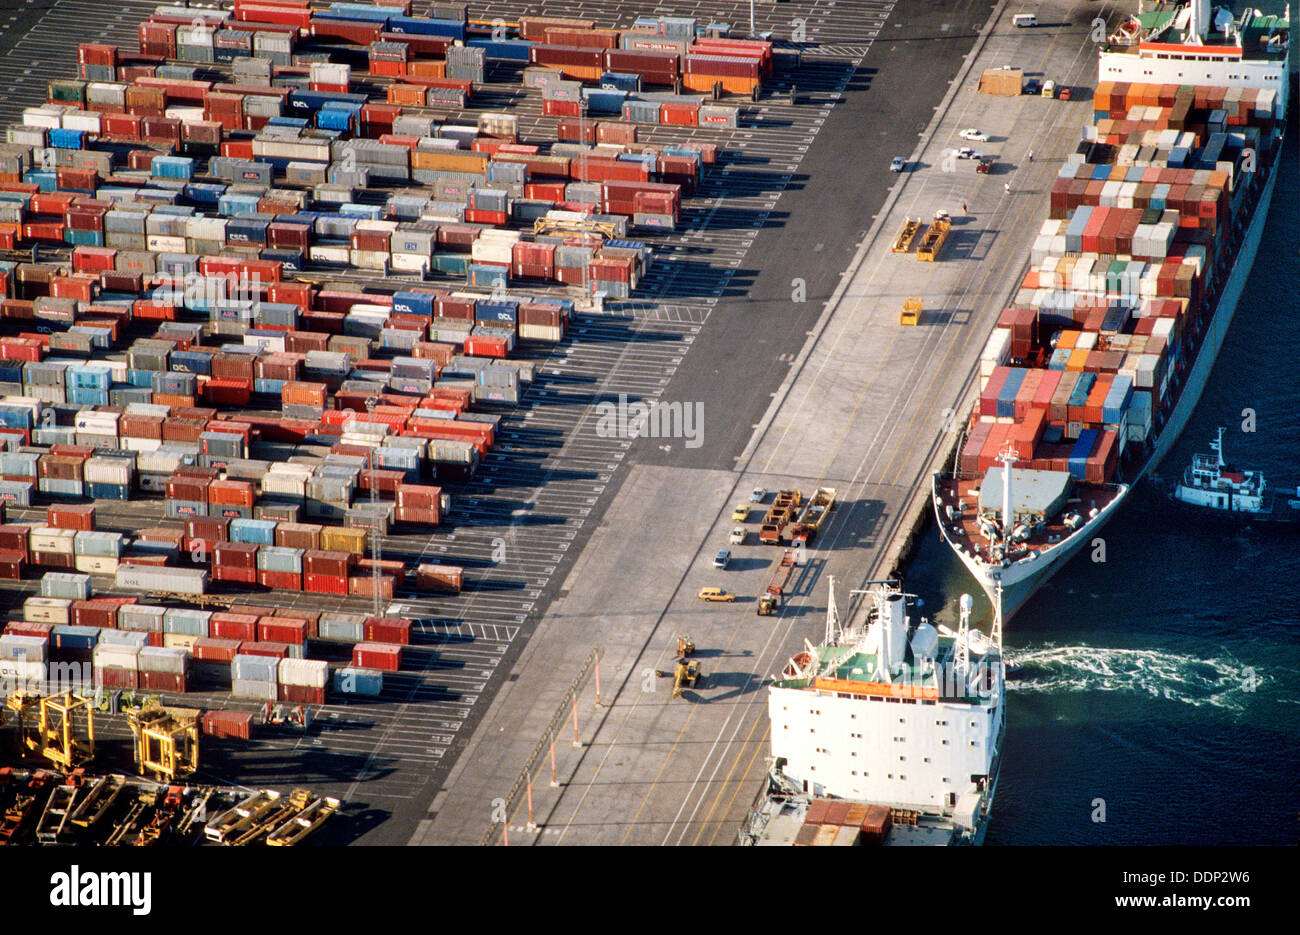 Aerial View Container Ships In Dock Against Container Storage Yards